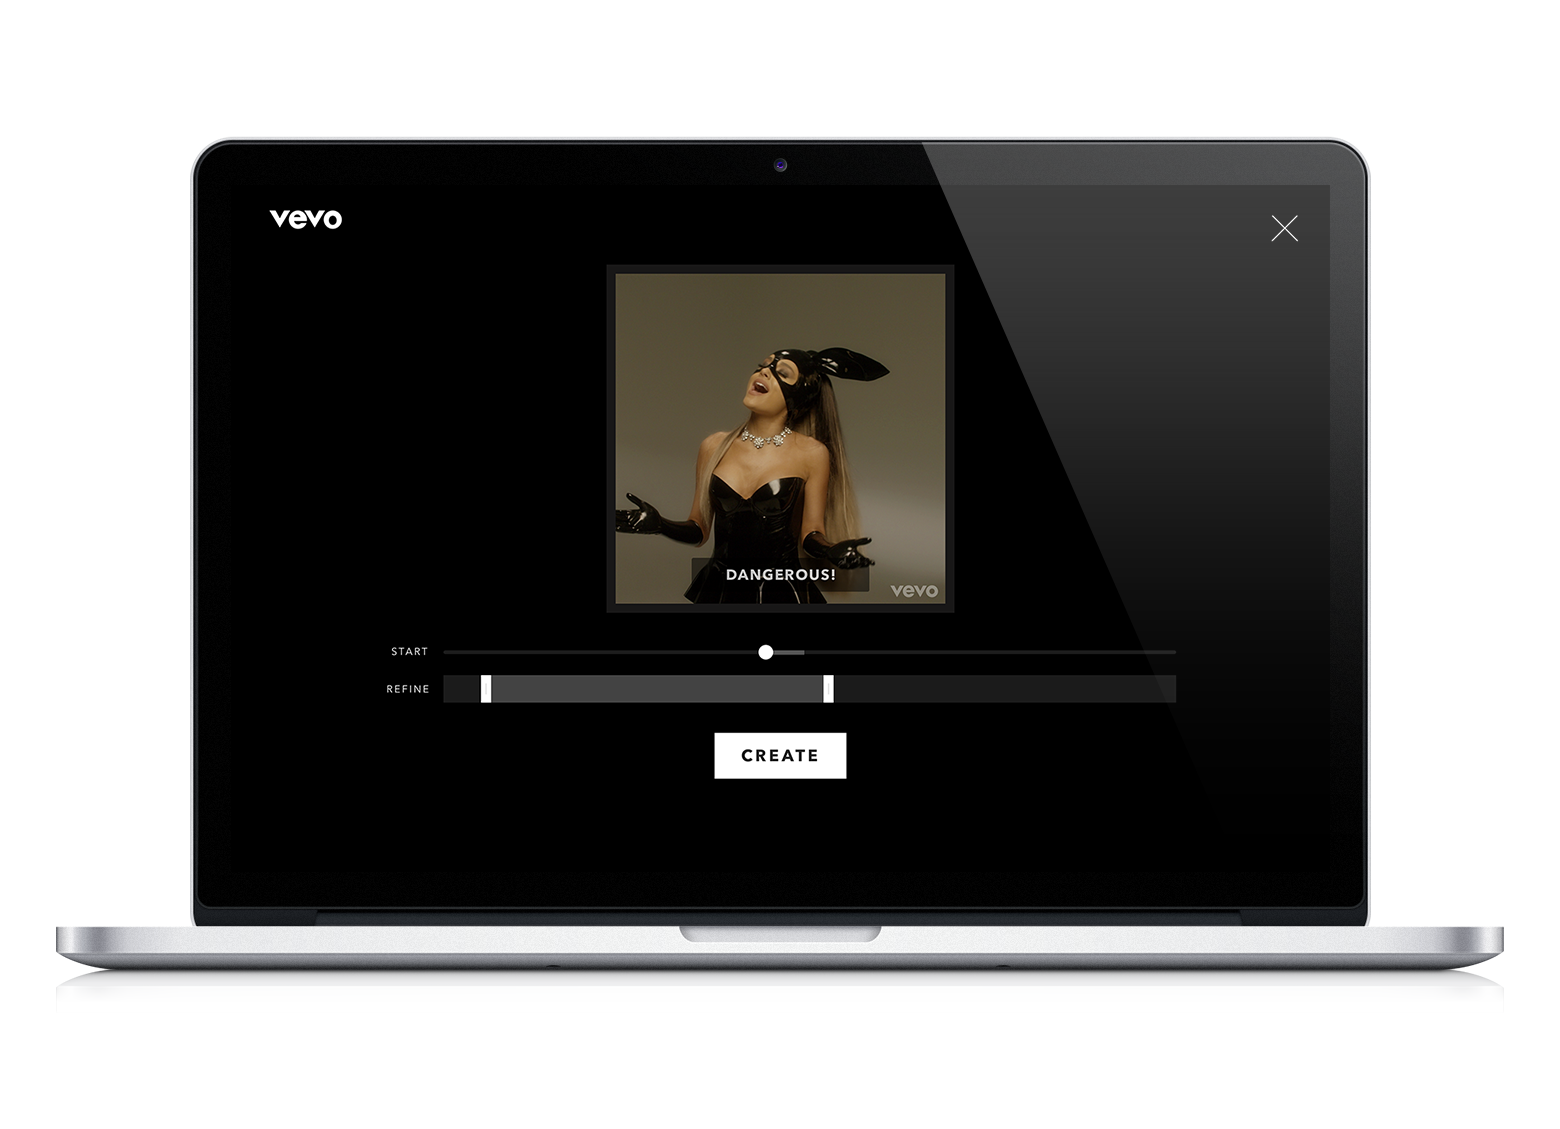 Turn gif to png. Vevo lets you make